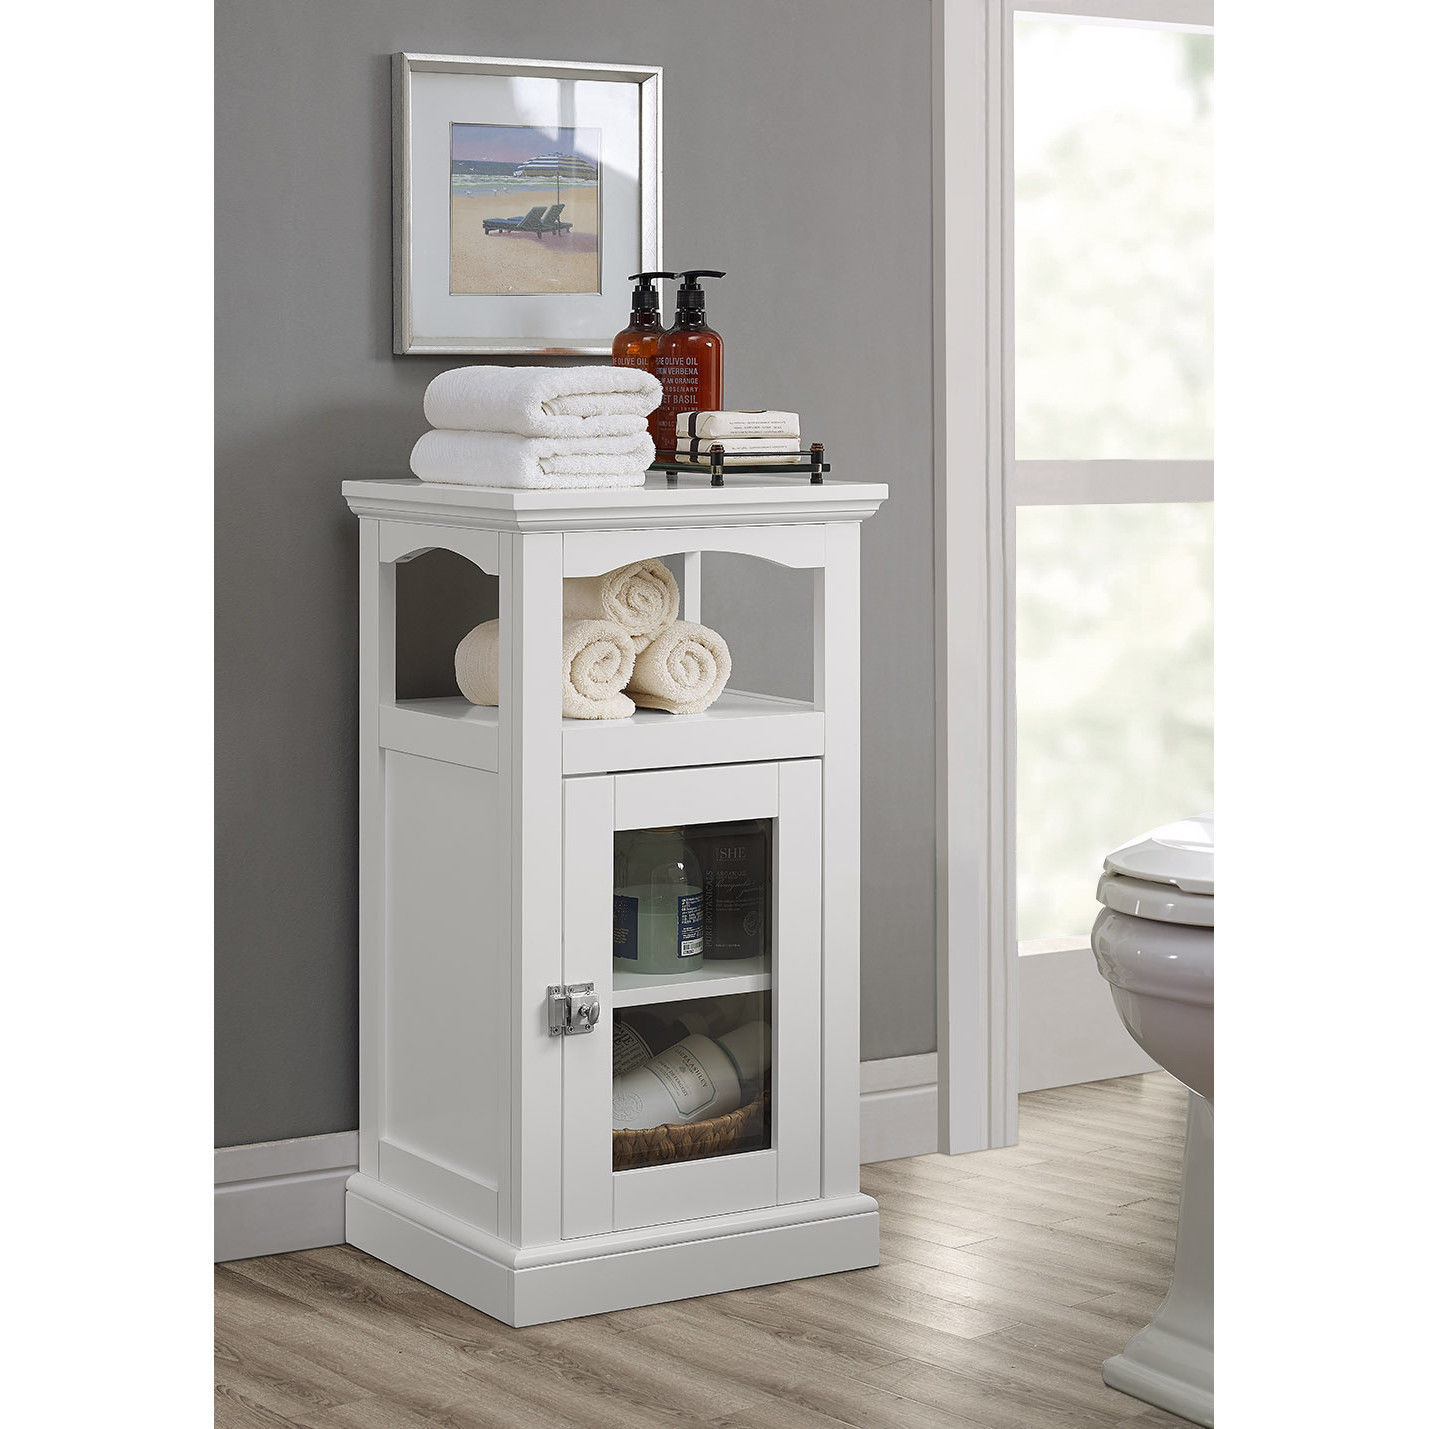 Cabinet Bath Storage Linen Closet Shelf Toilet Organize Towels Vanity Cosmetics Cabinets